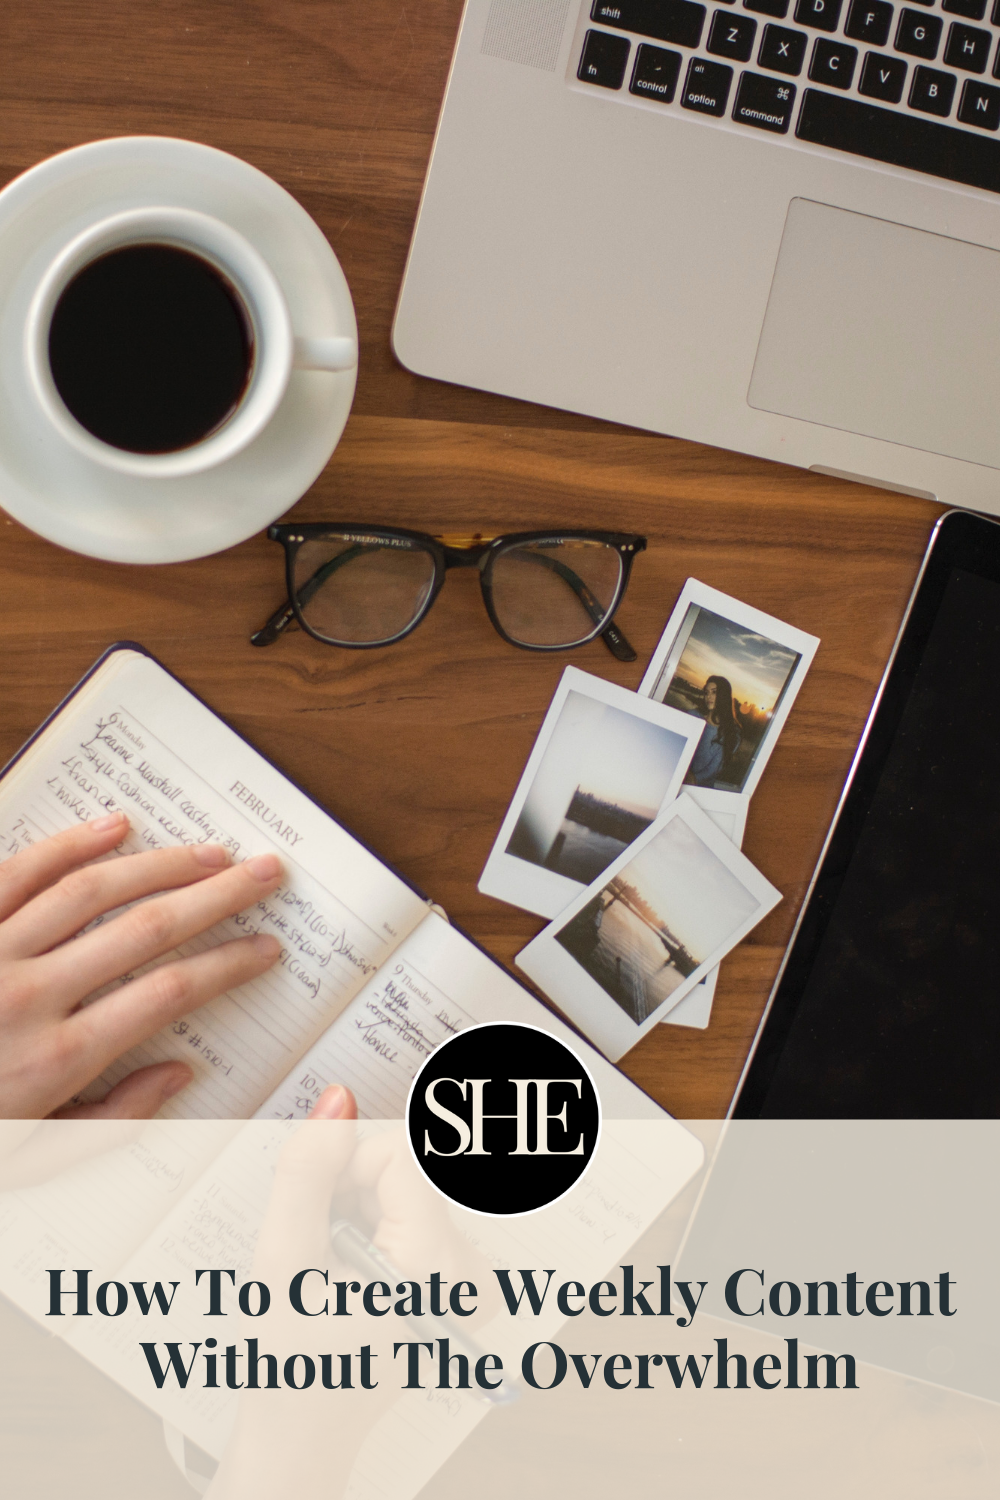 How To Create Weekly Content Without The Overwhelm_Blog_Image.png